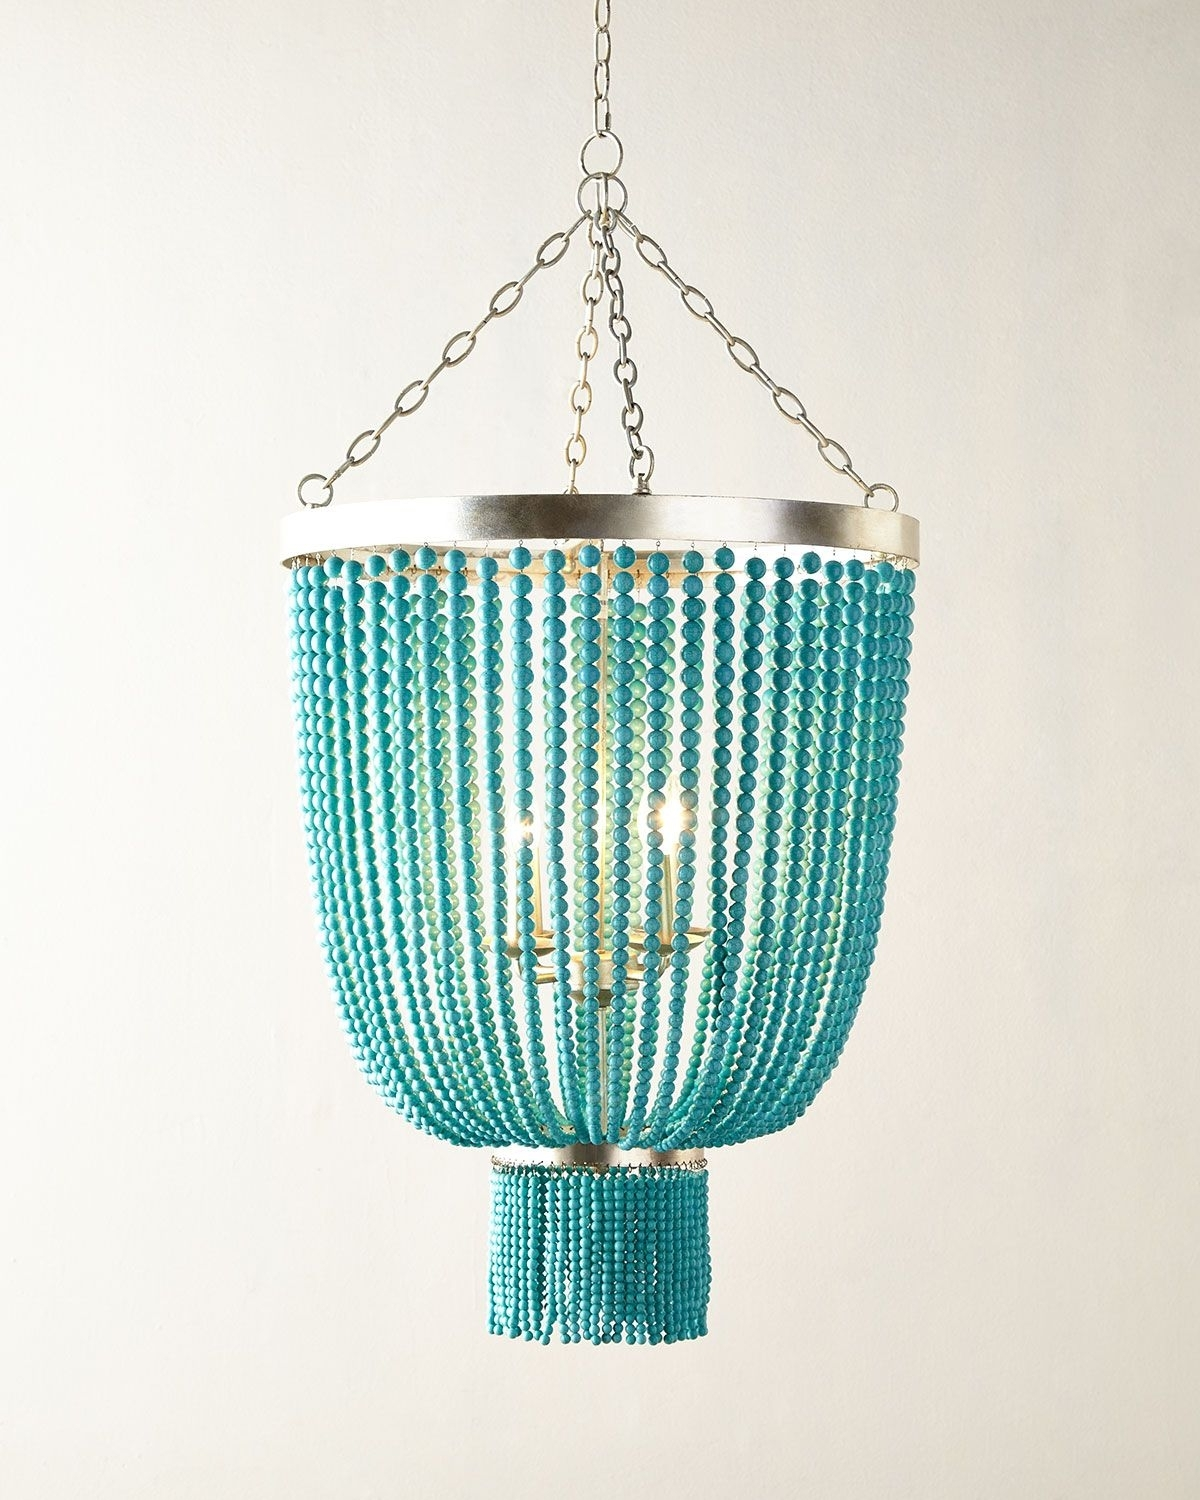 Small Turquoise Beaded Chandeliers Intended For Current Lighting : Aqua Light Turquoise Green Vintage Style Chandelier (View 3 of 15)